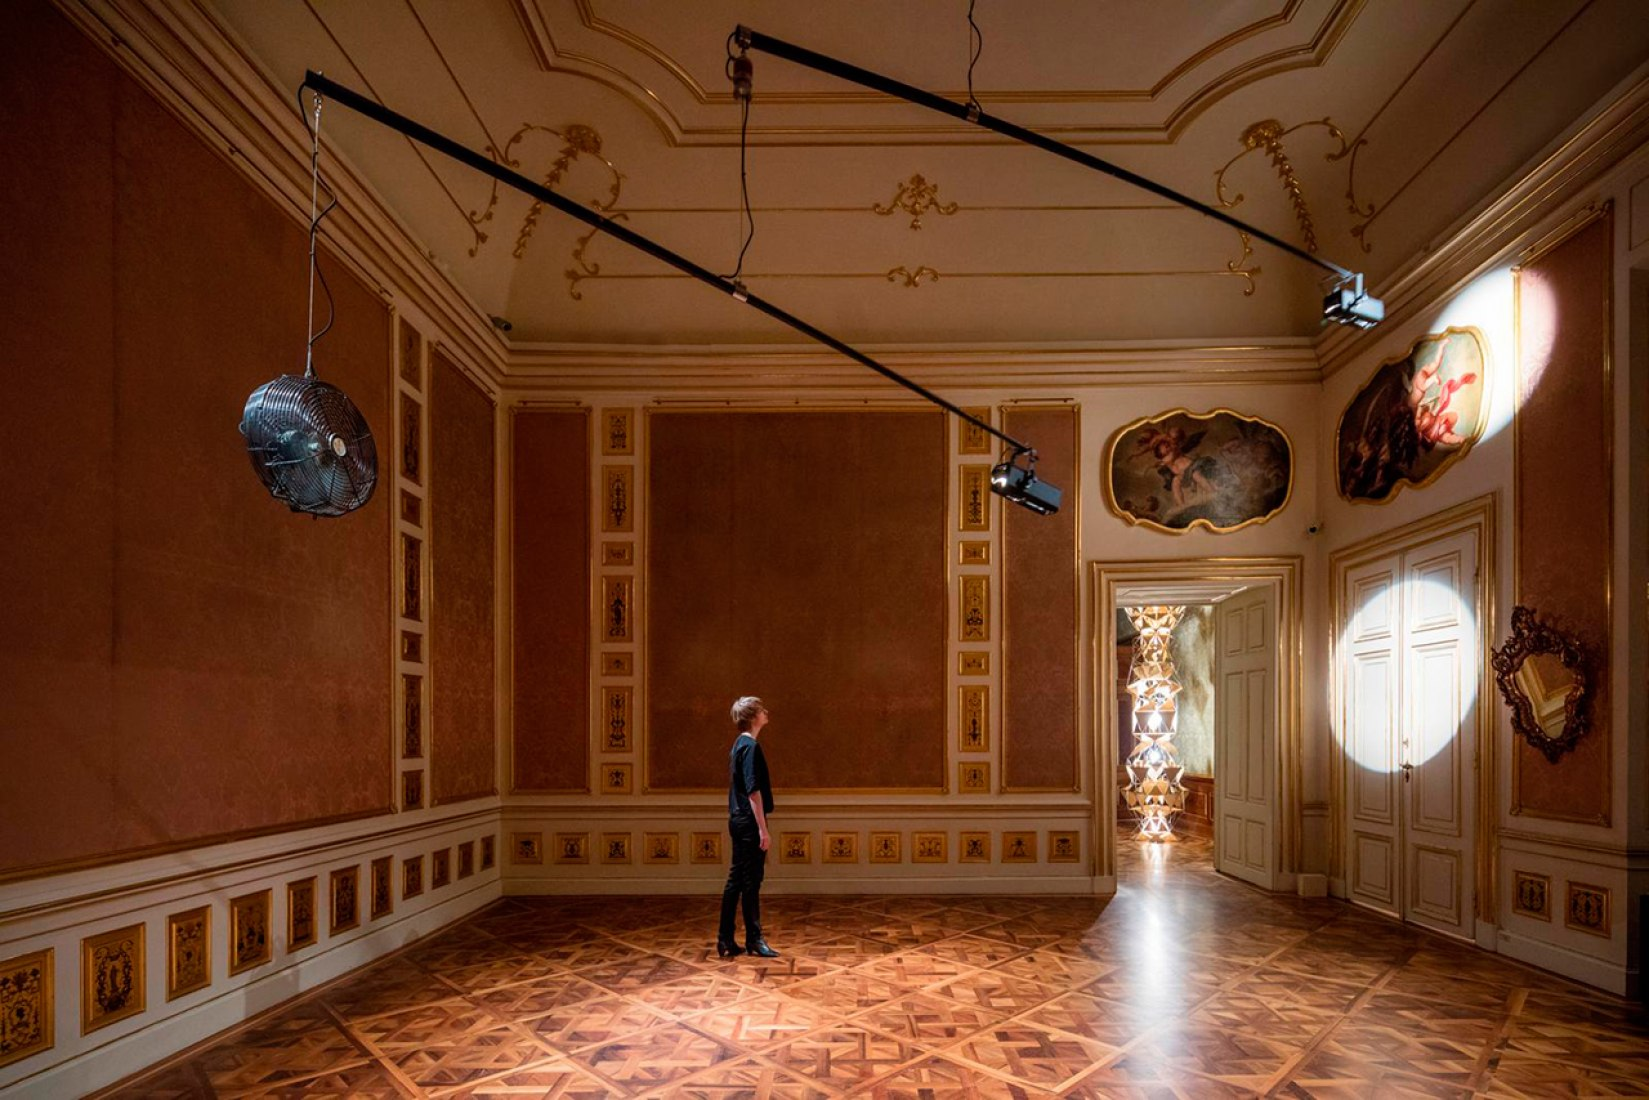 Double light ventilator mobile, 2015 The Winter Palace of Prince Eugene of Savoy, Vienna 2015. Photograph © Anders Sune Berg.